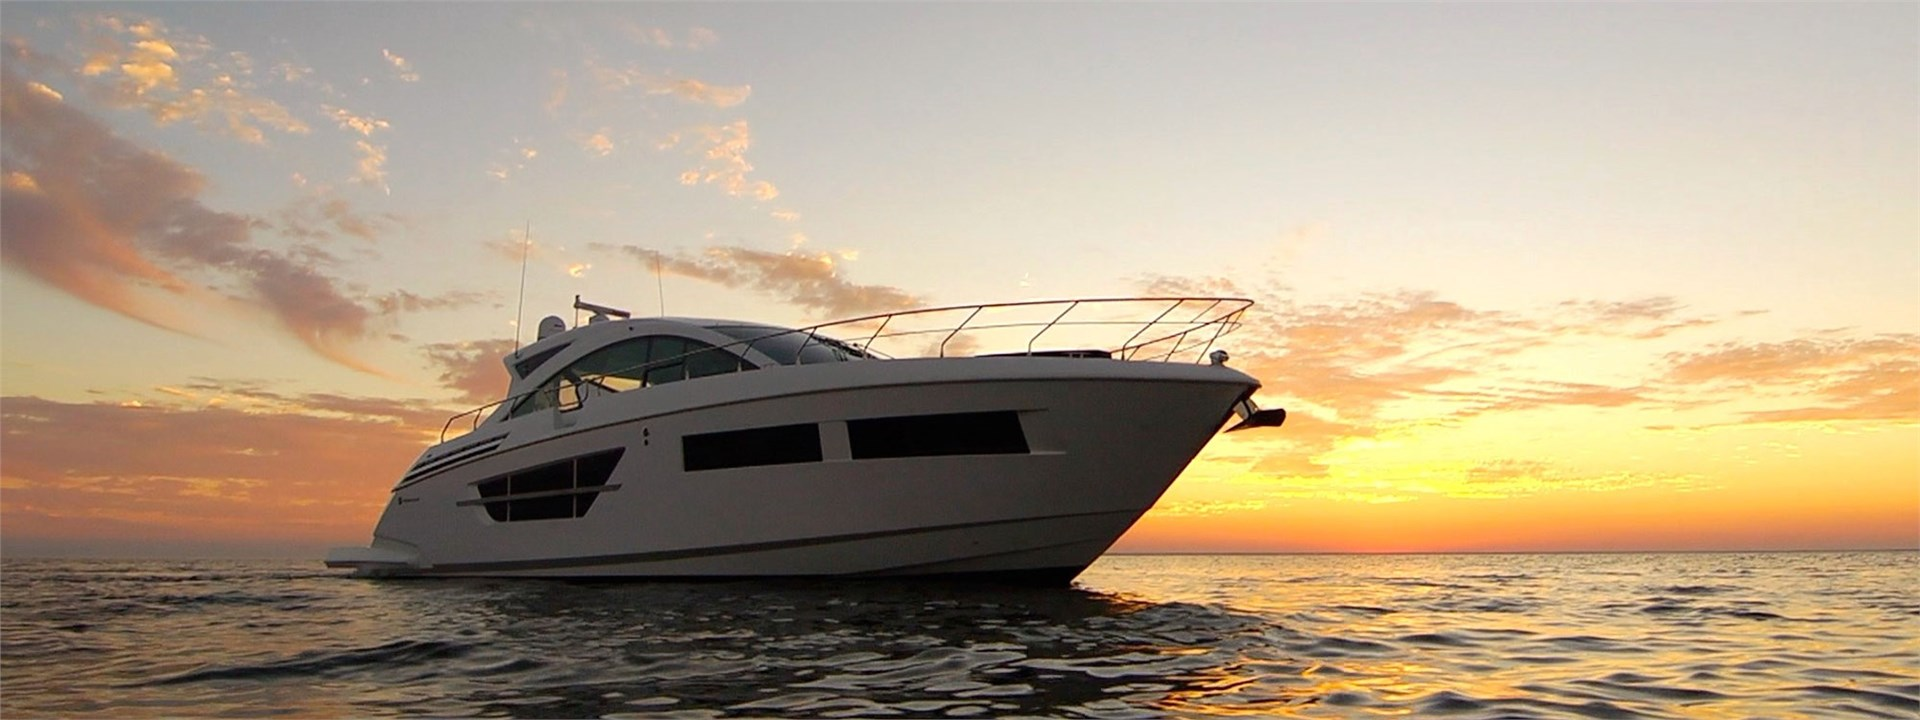 Water Shot of a Cruiser Yachts 60 Cantius